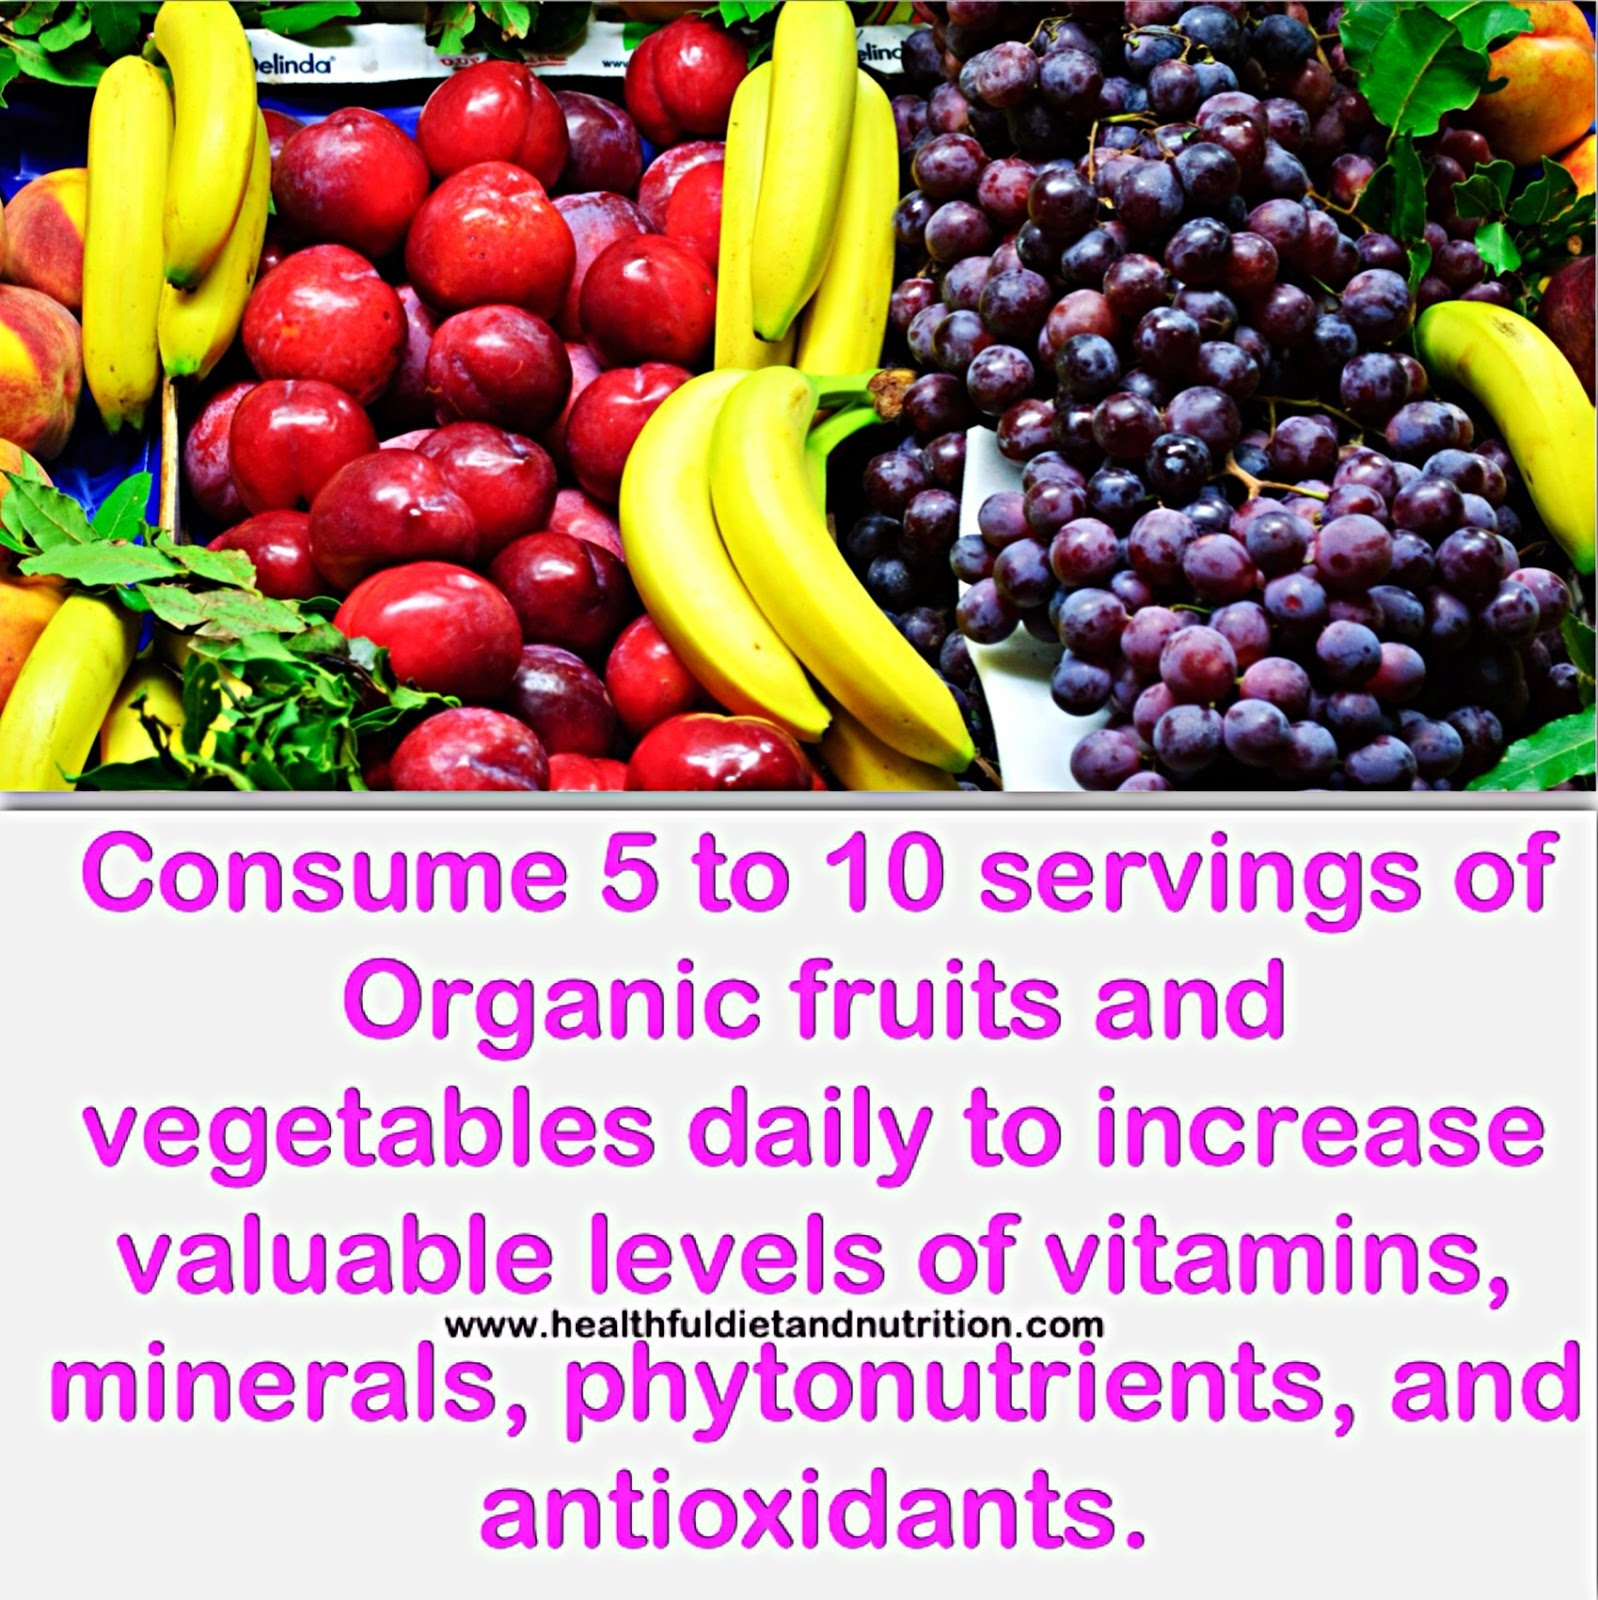 Consume Organic Fruits and Vegetables Daily